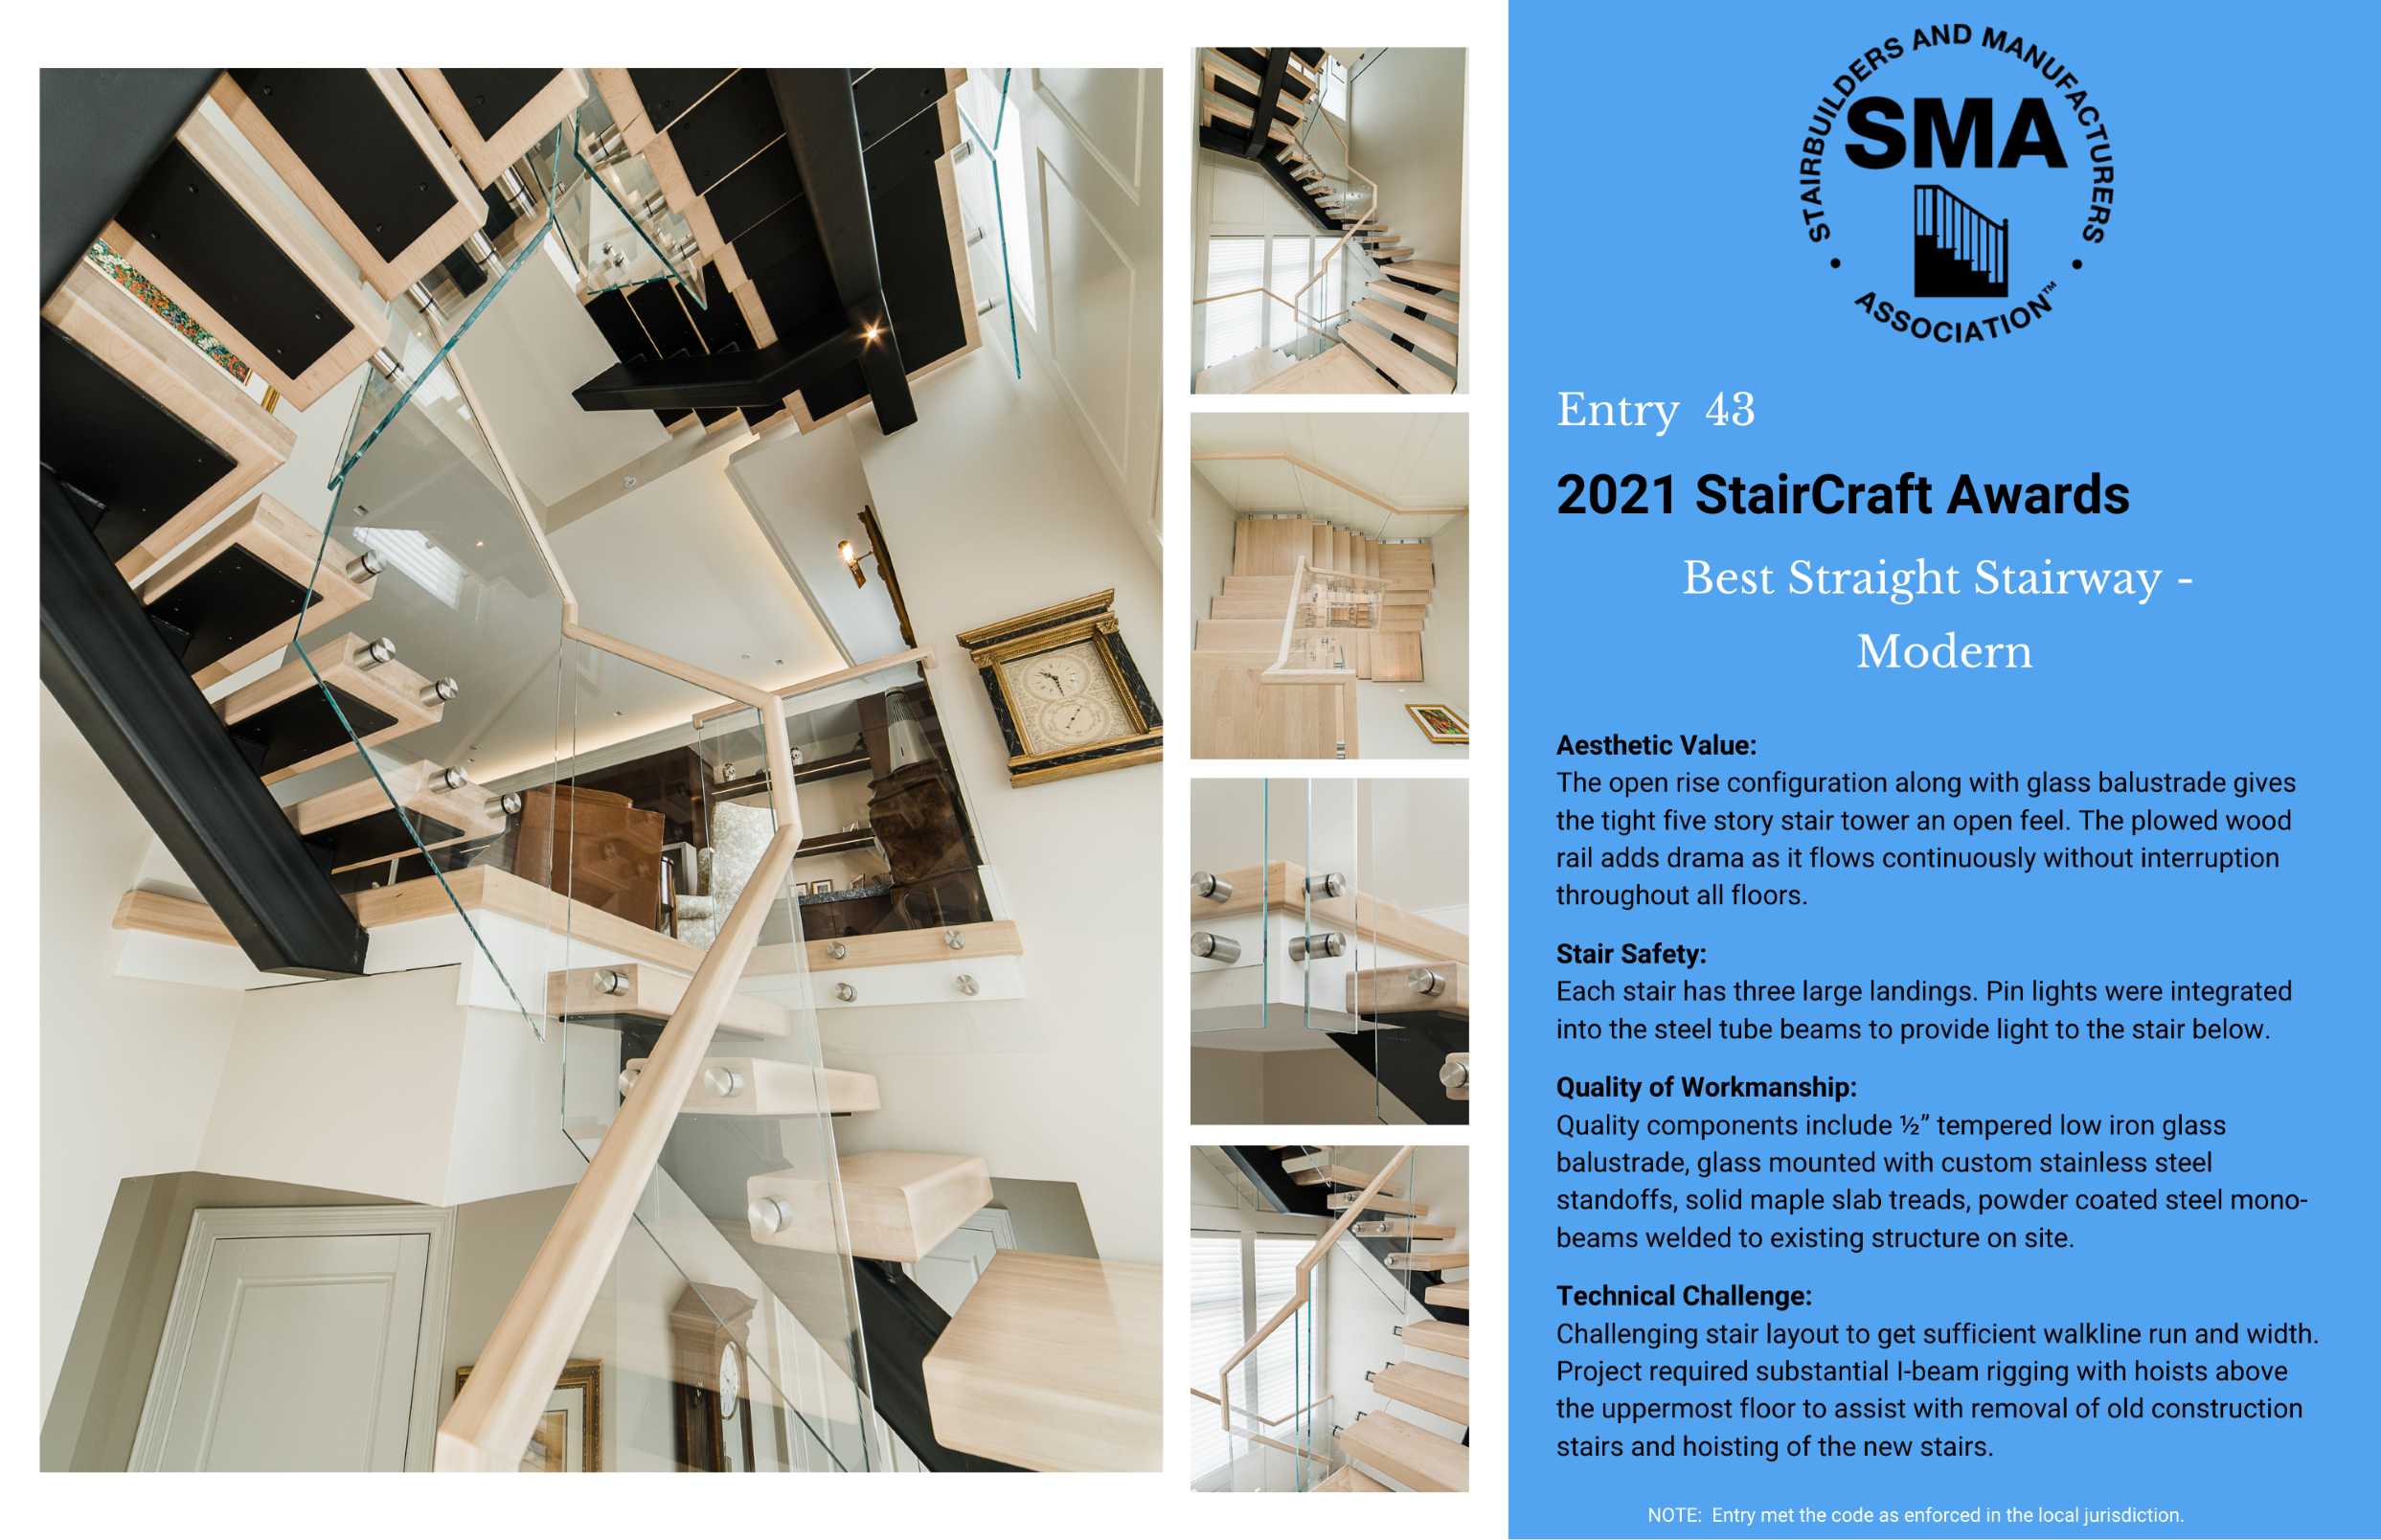 2021 StairCraft Awards Entry 43